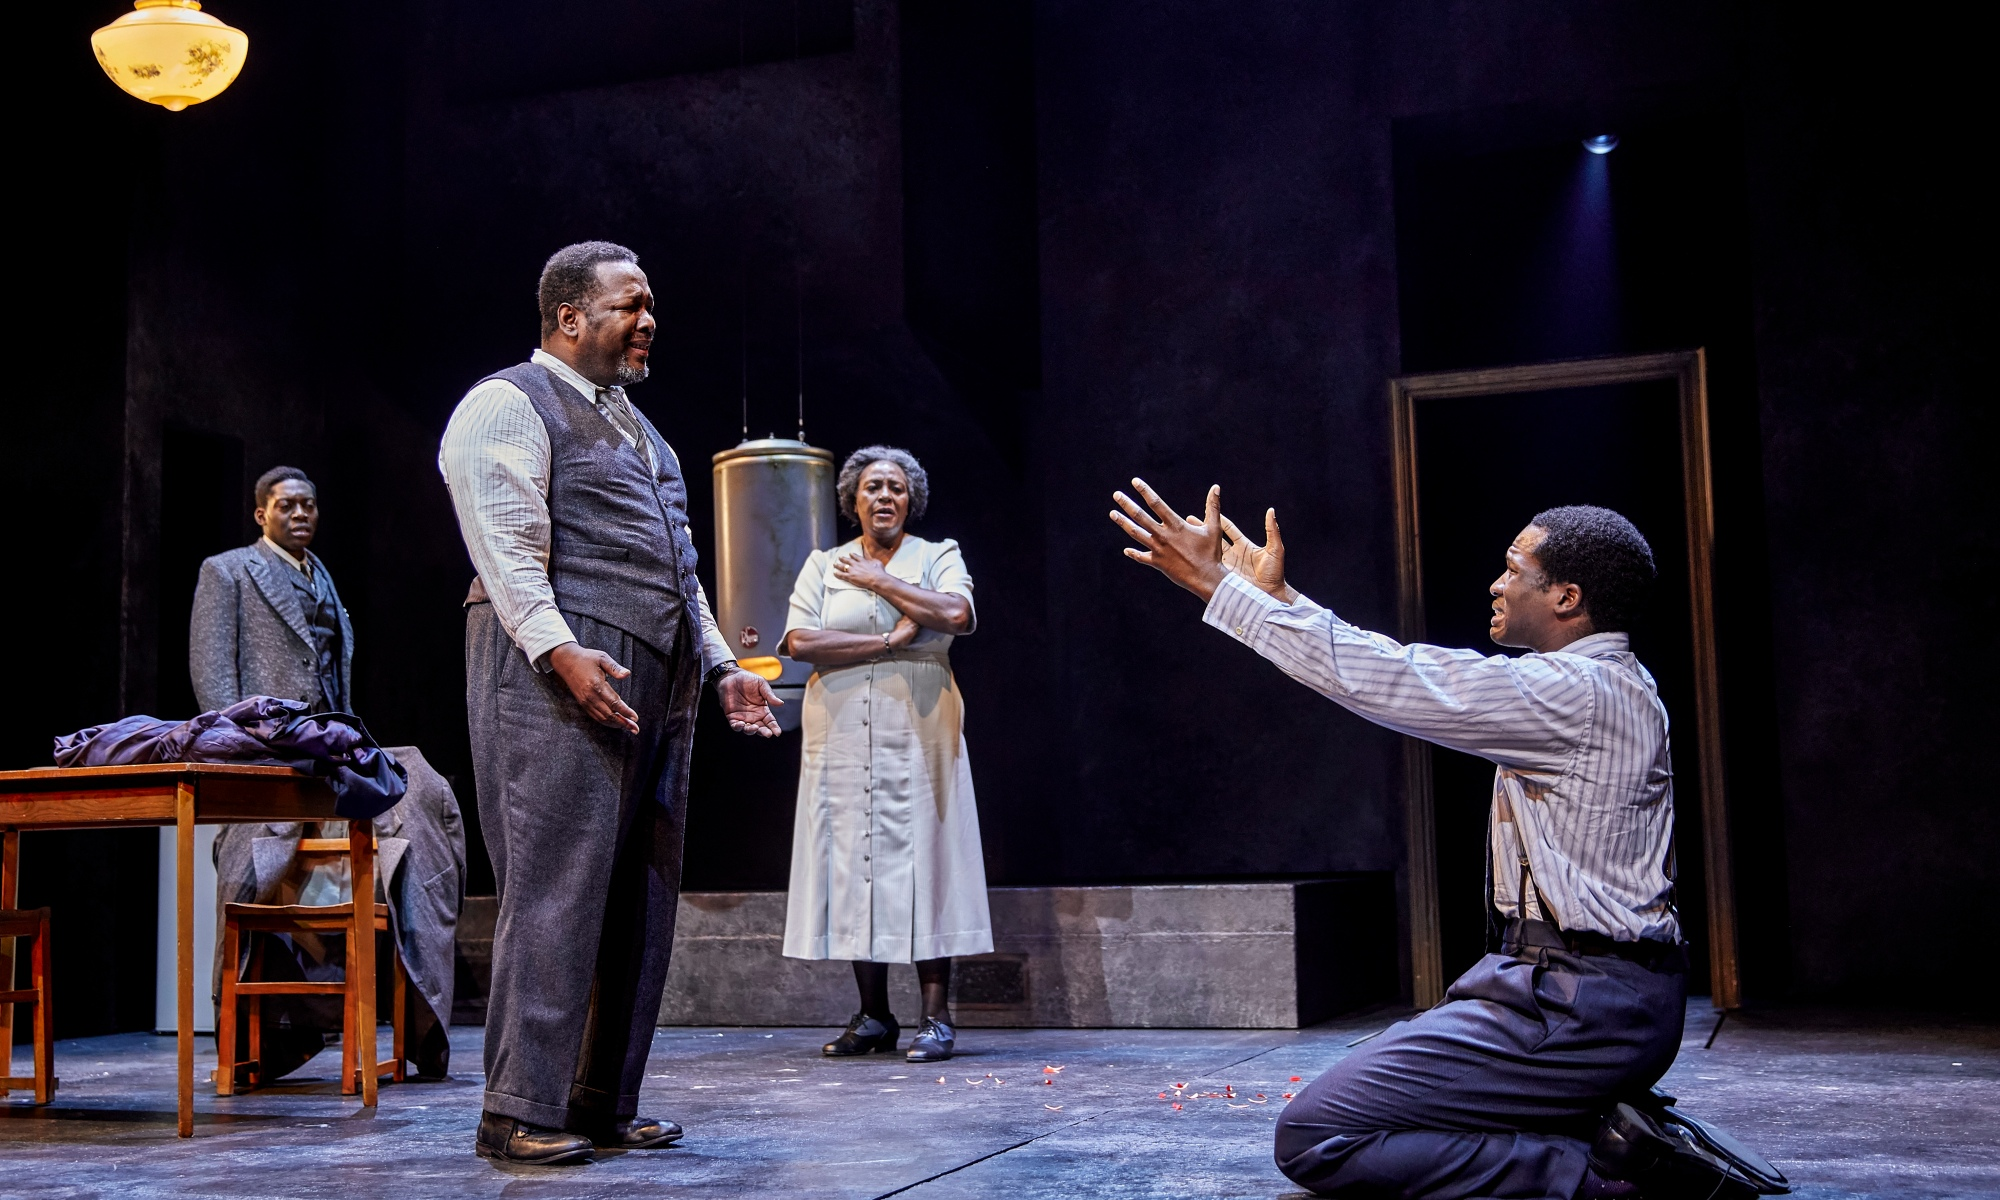 A man to the left of the stage has his arms slightly in front of them, with their palms upwards. On the floor on the right, with his arms outstretched, is a man (his son), who appears emotional. Another brother and the mother are both watching on in the background.